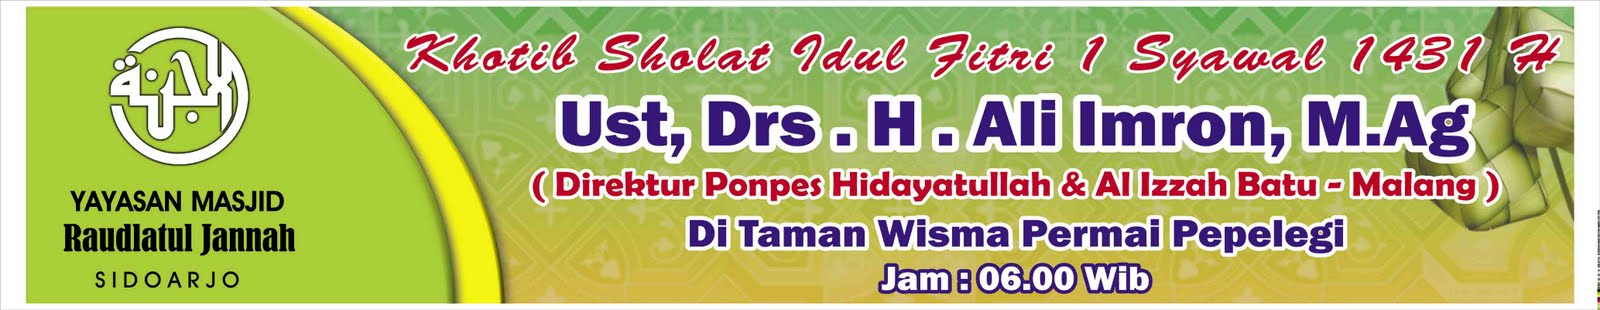 Smart Advertising Spanduk Sholat Idul Fitri Yayasan